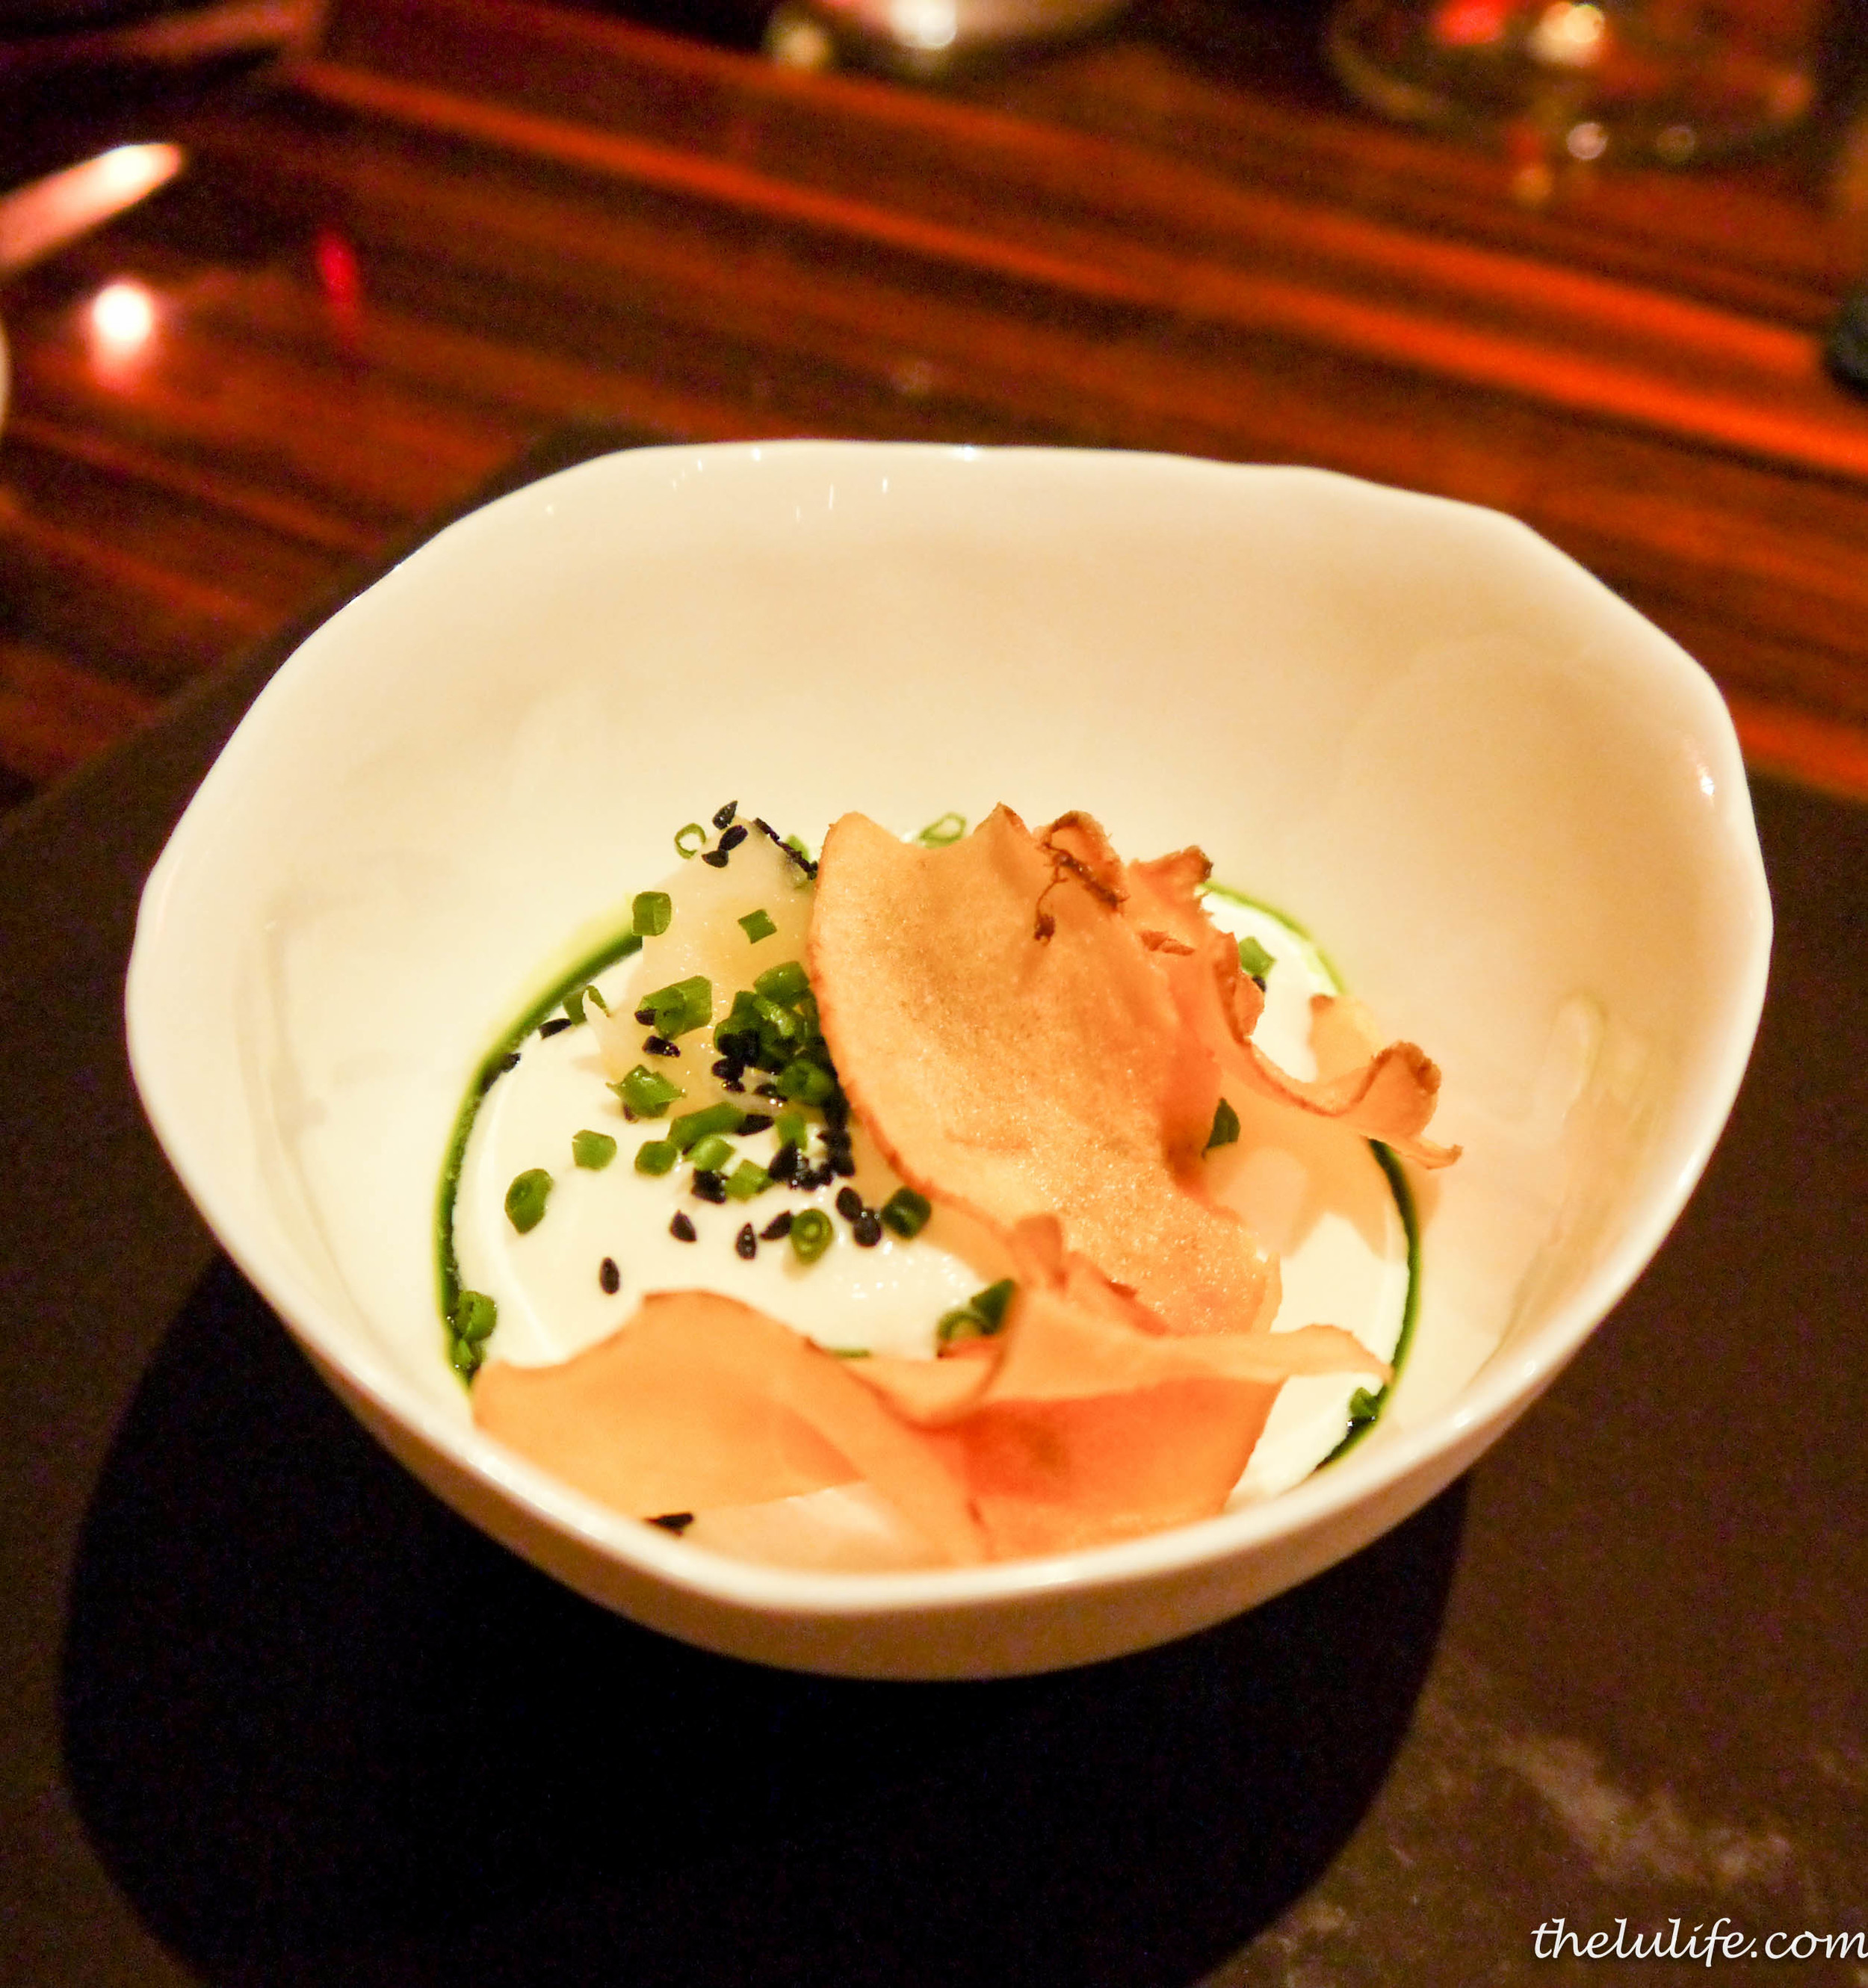 Amuse bouche: artichoke three ways (crisped, poached and pureed) with a lemon confit and topped with chives